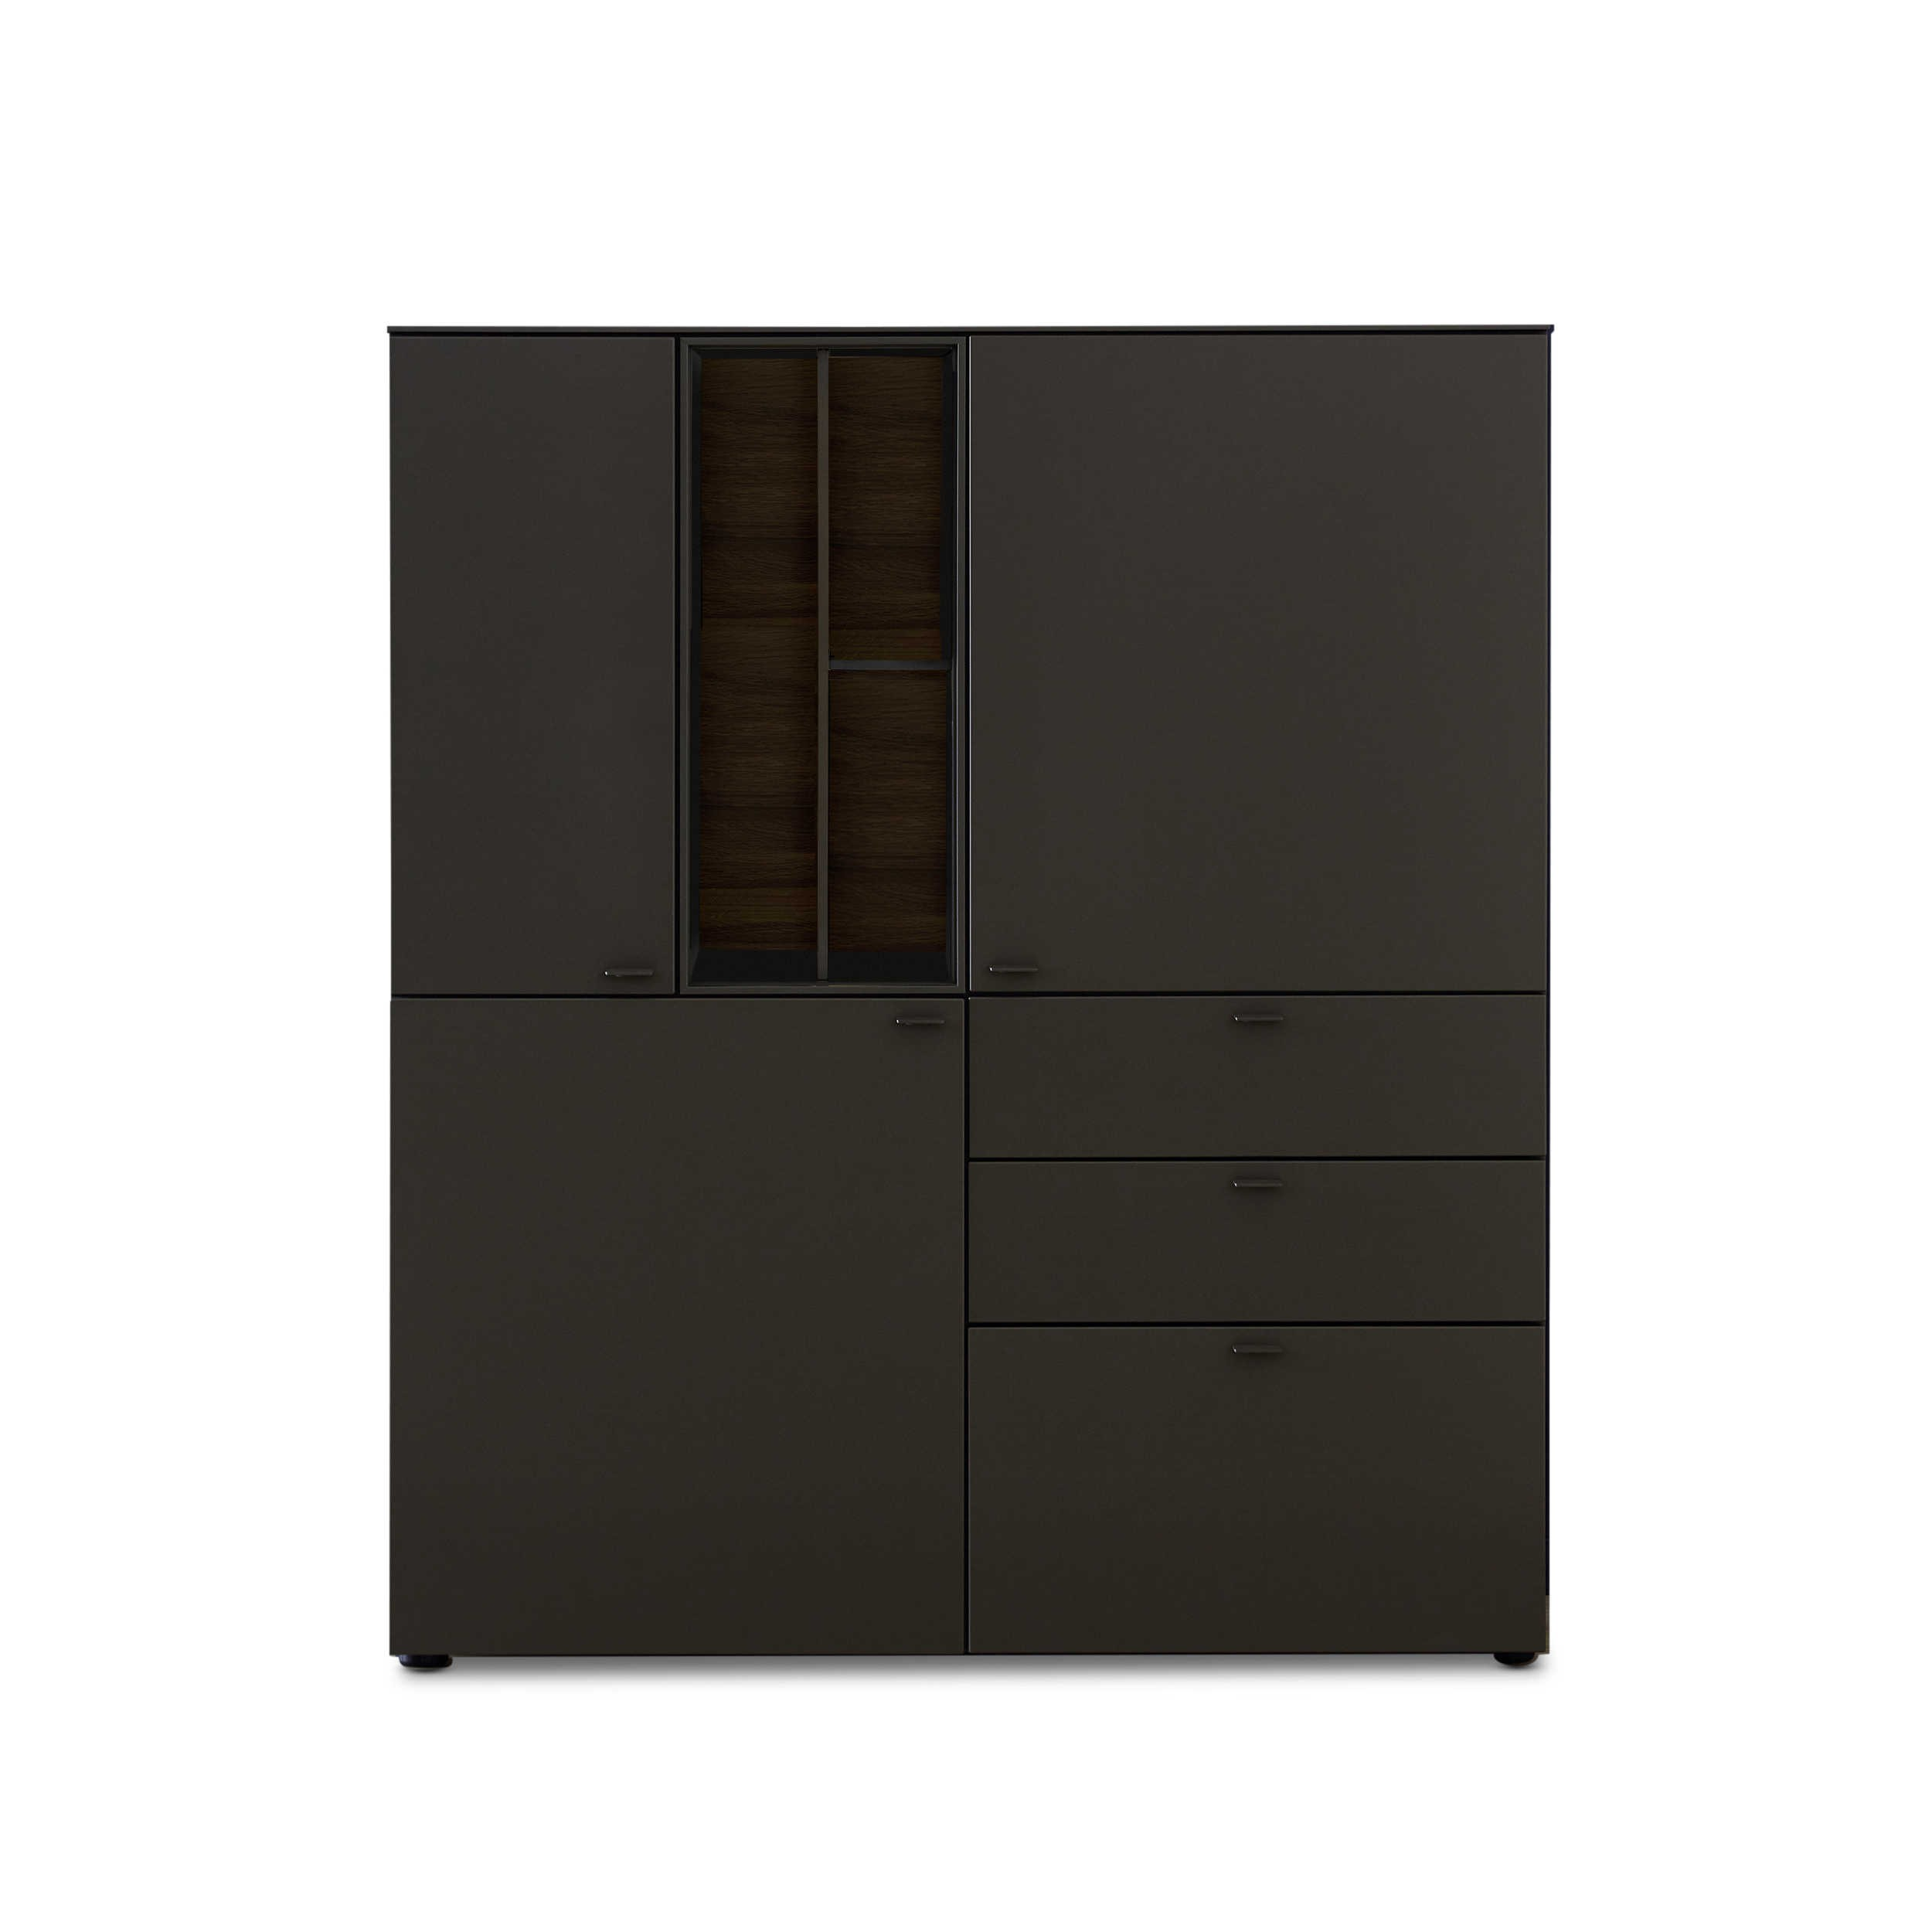 sch ner wohnen highboard geo s653 grau holz online kaufen bei woonio. Black Bedroom Furniture Sets. Home Design Ideas